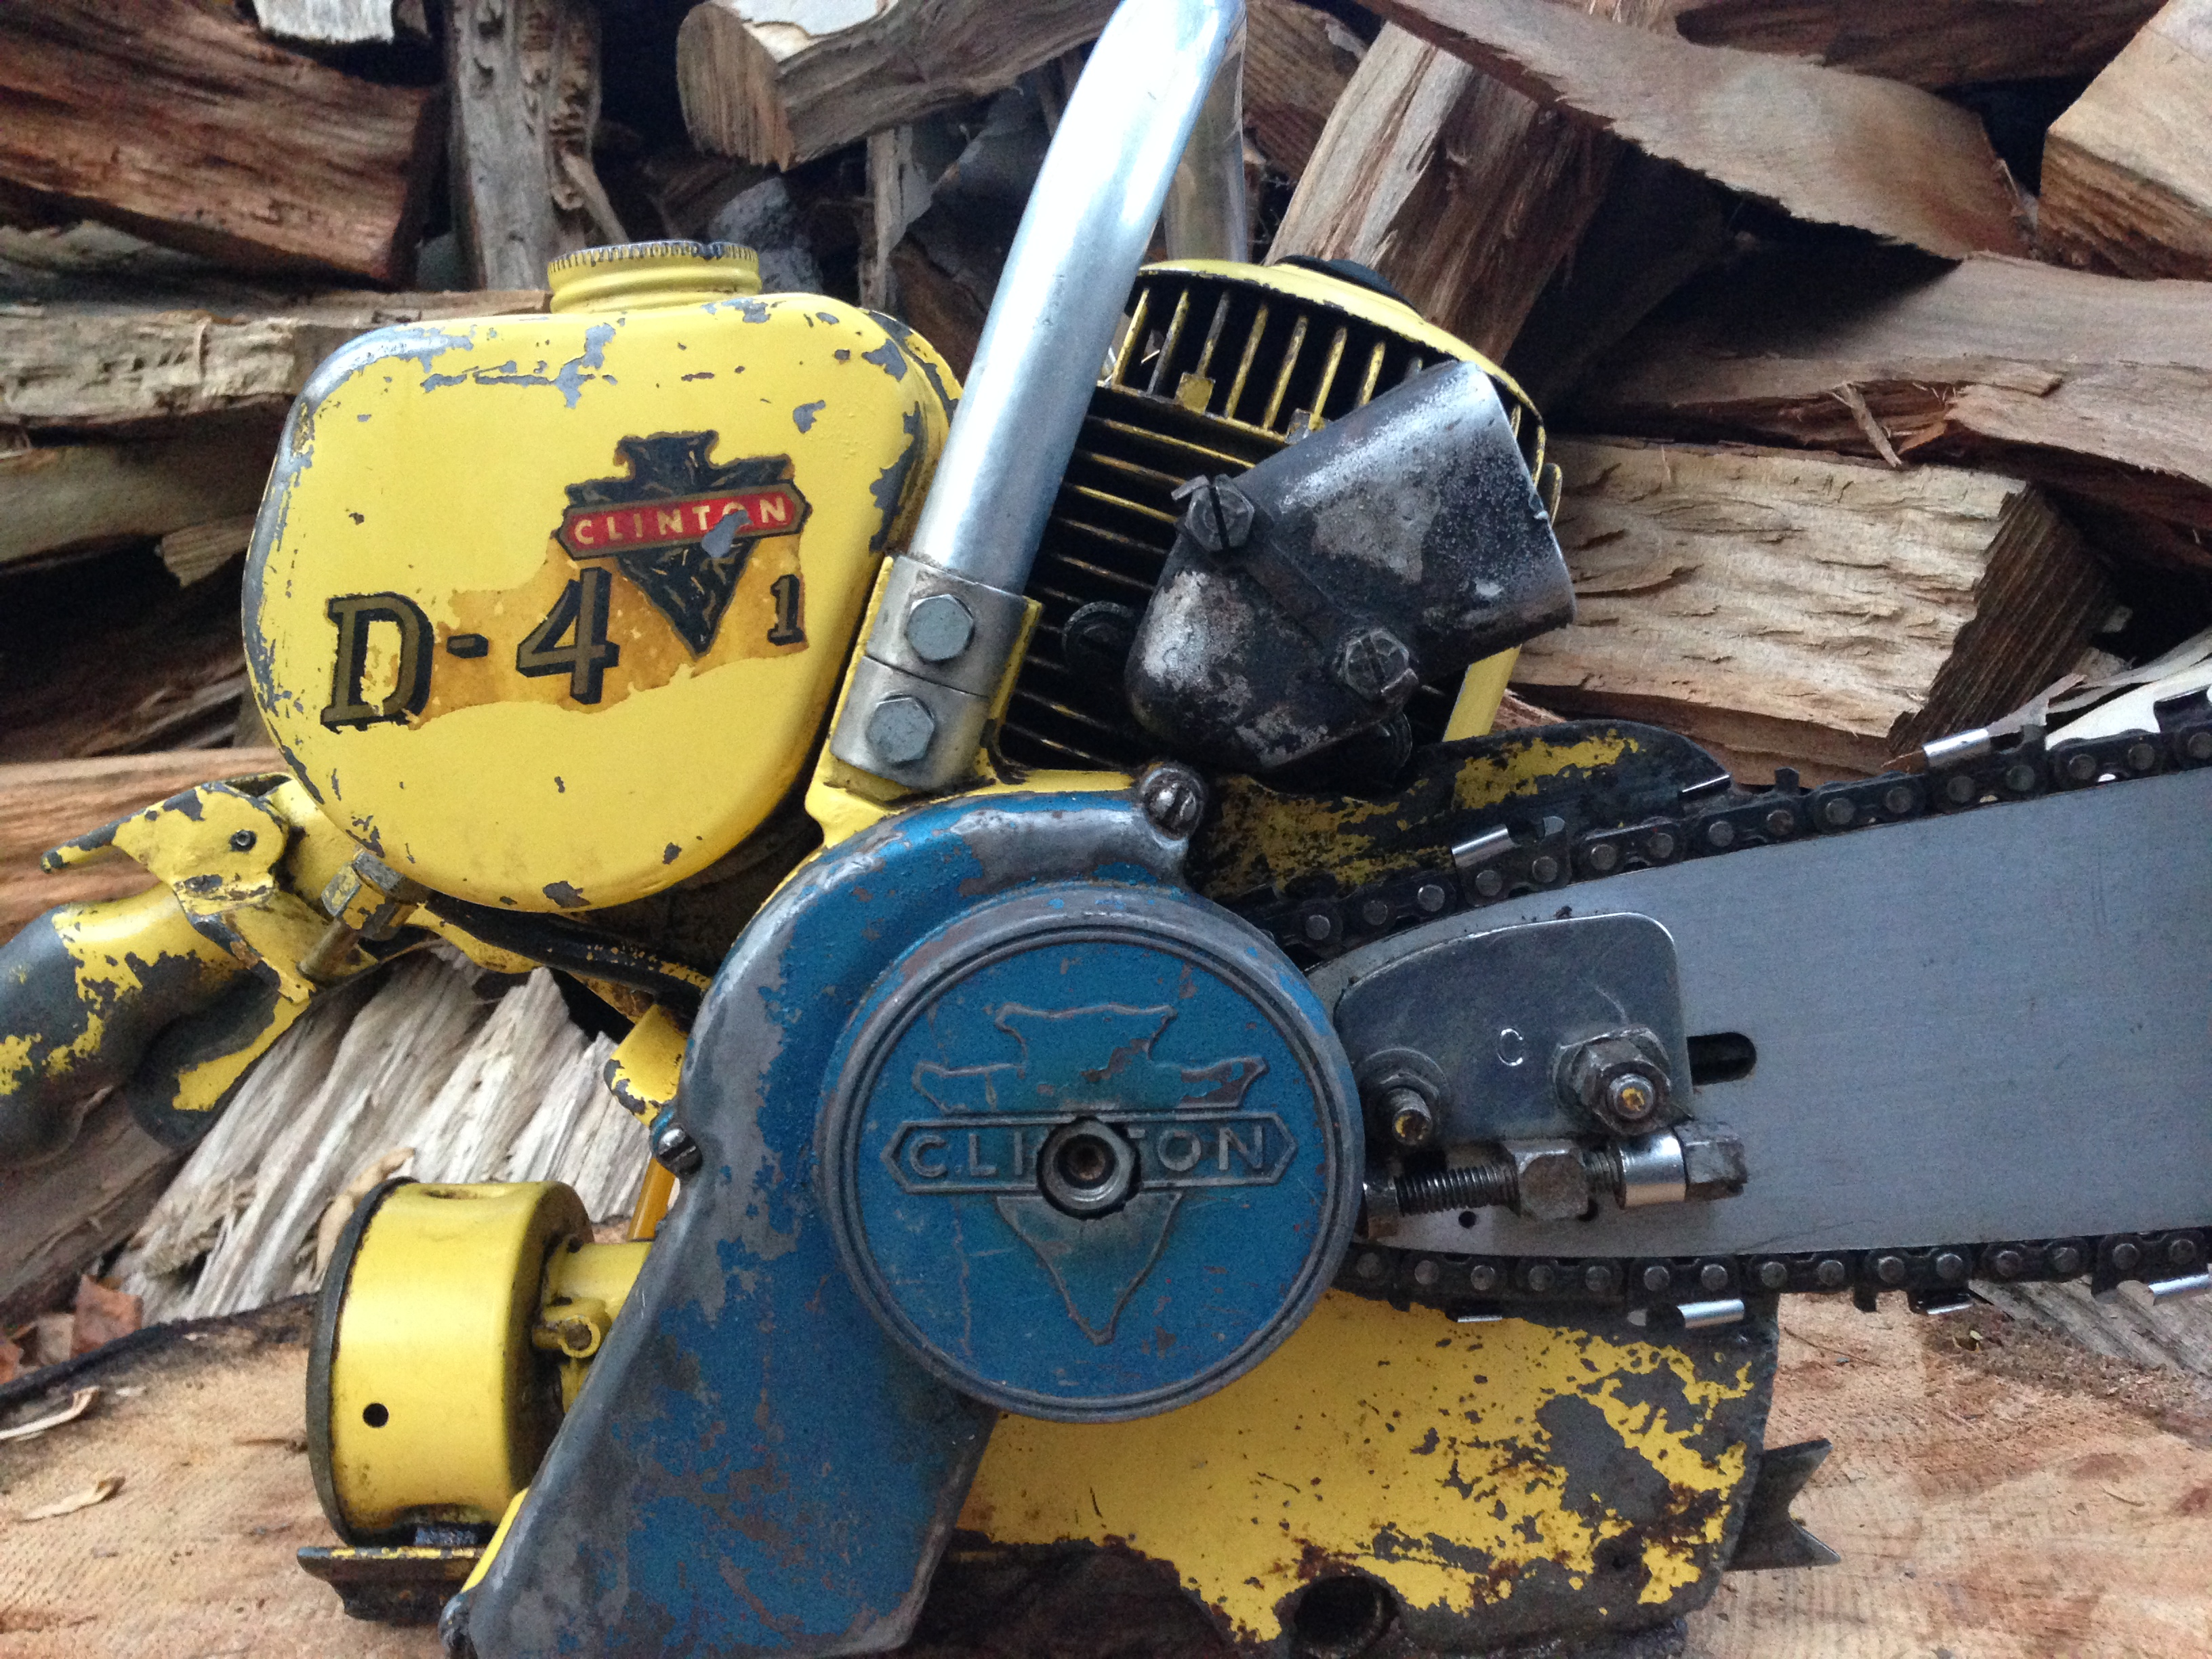 Clinton D4 vintage chainsaw #9.JPG